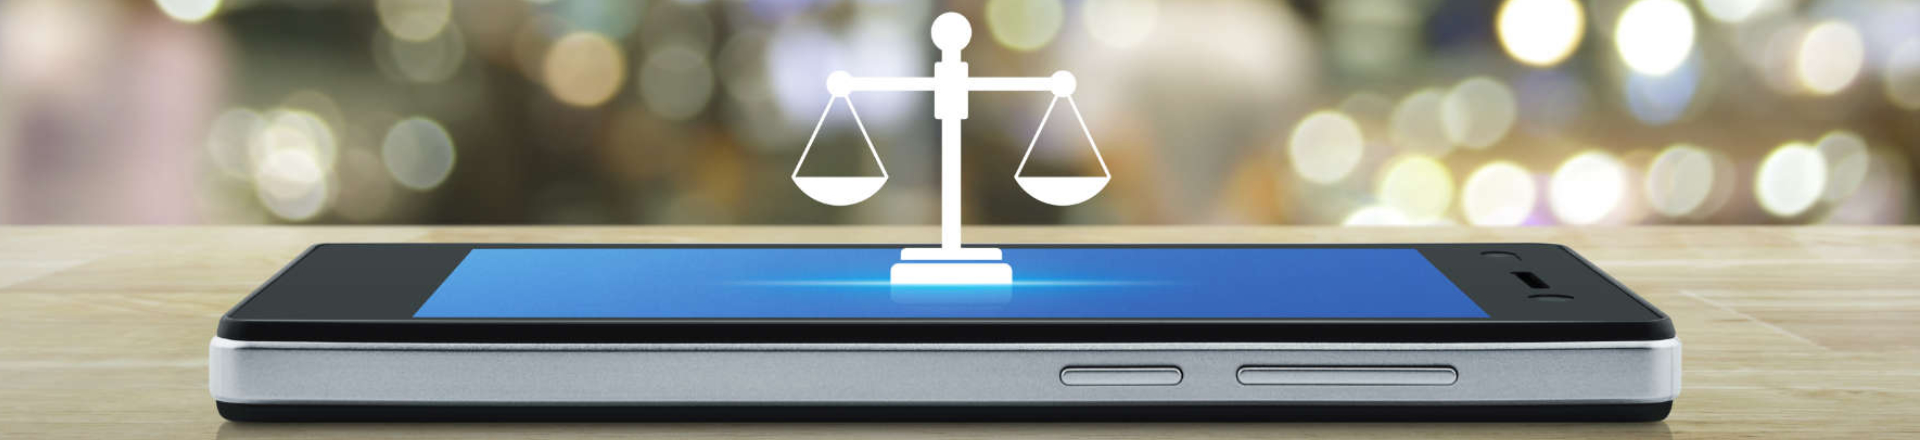 a symbol of justice scales on a smartphone